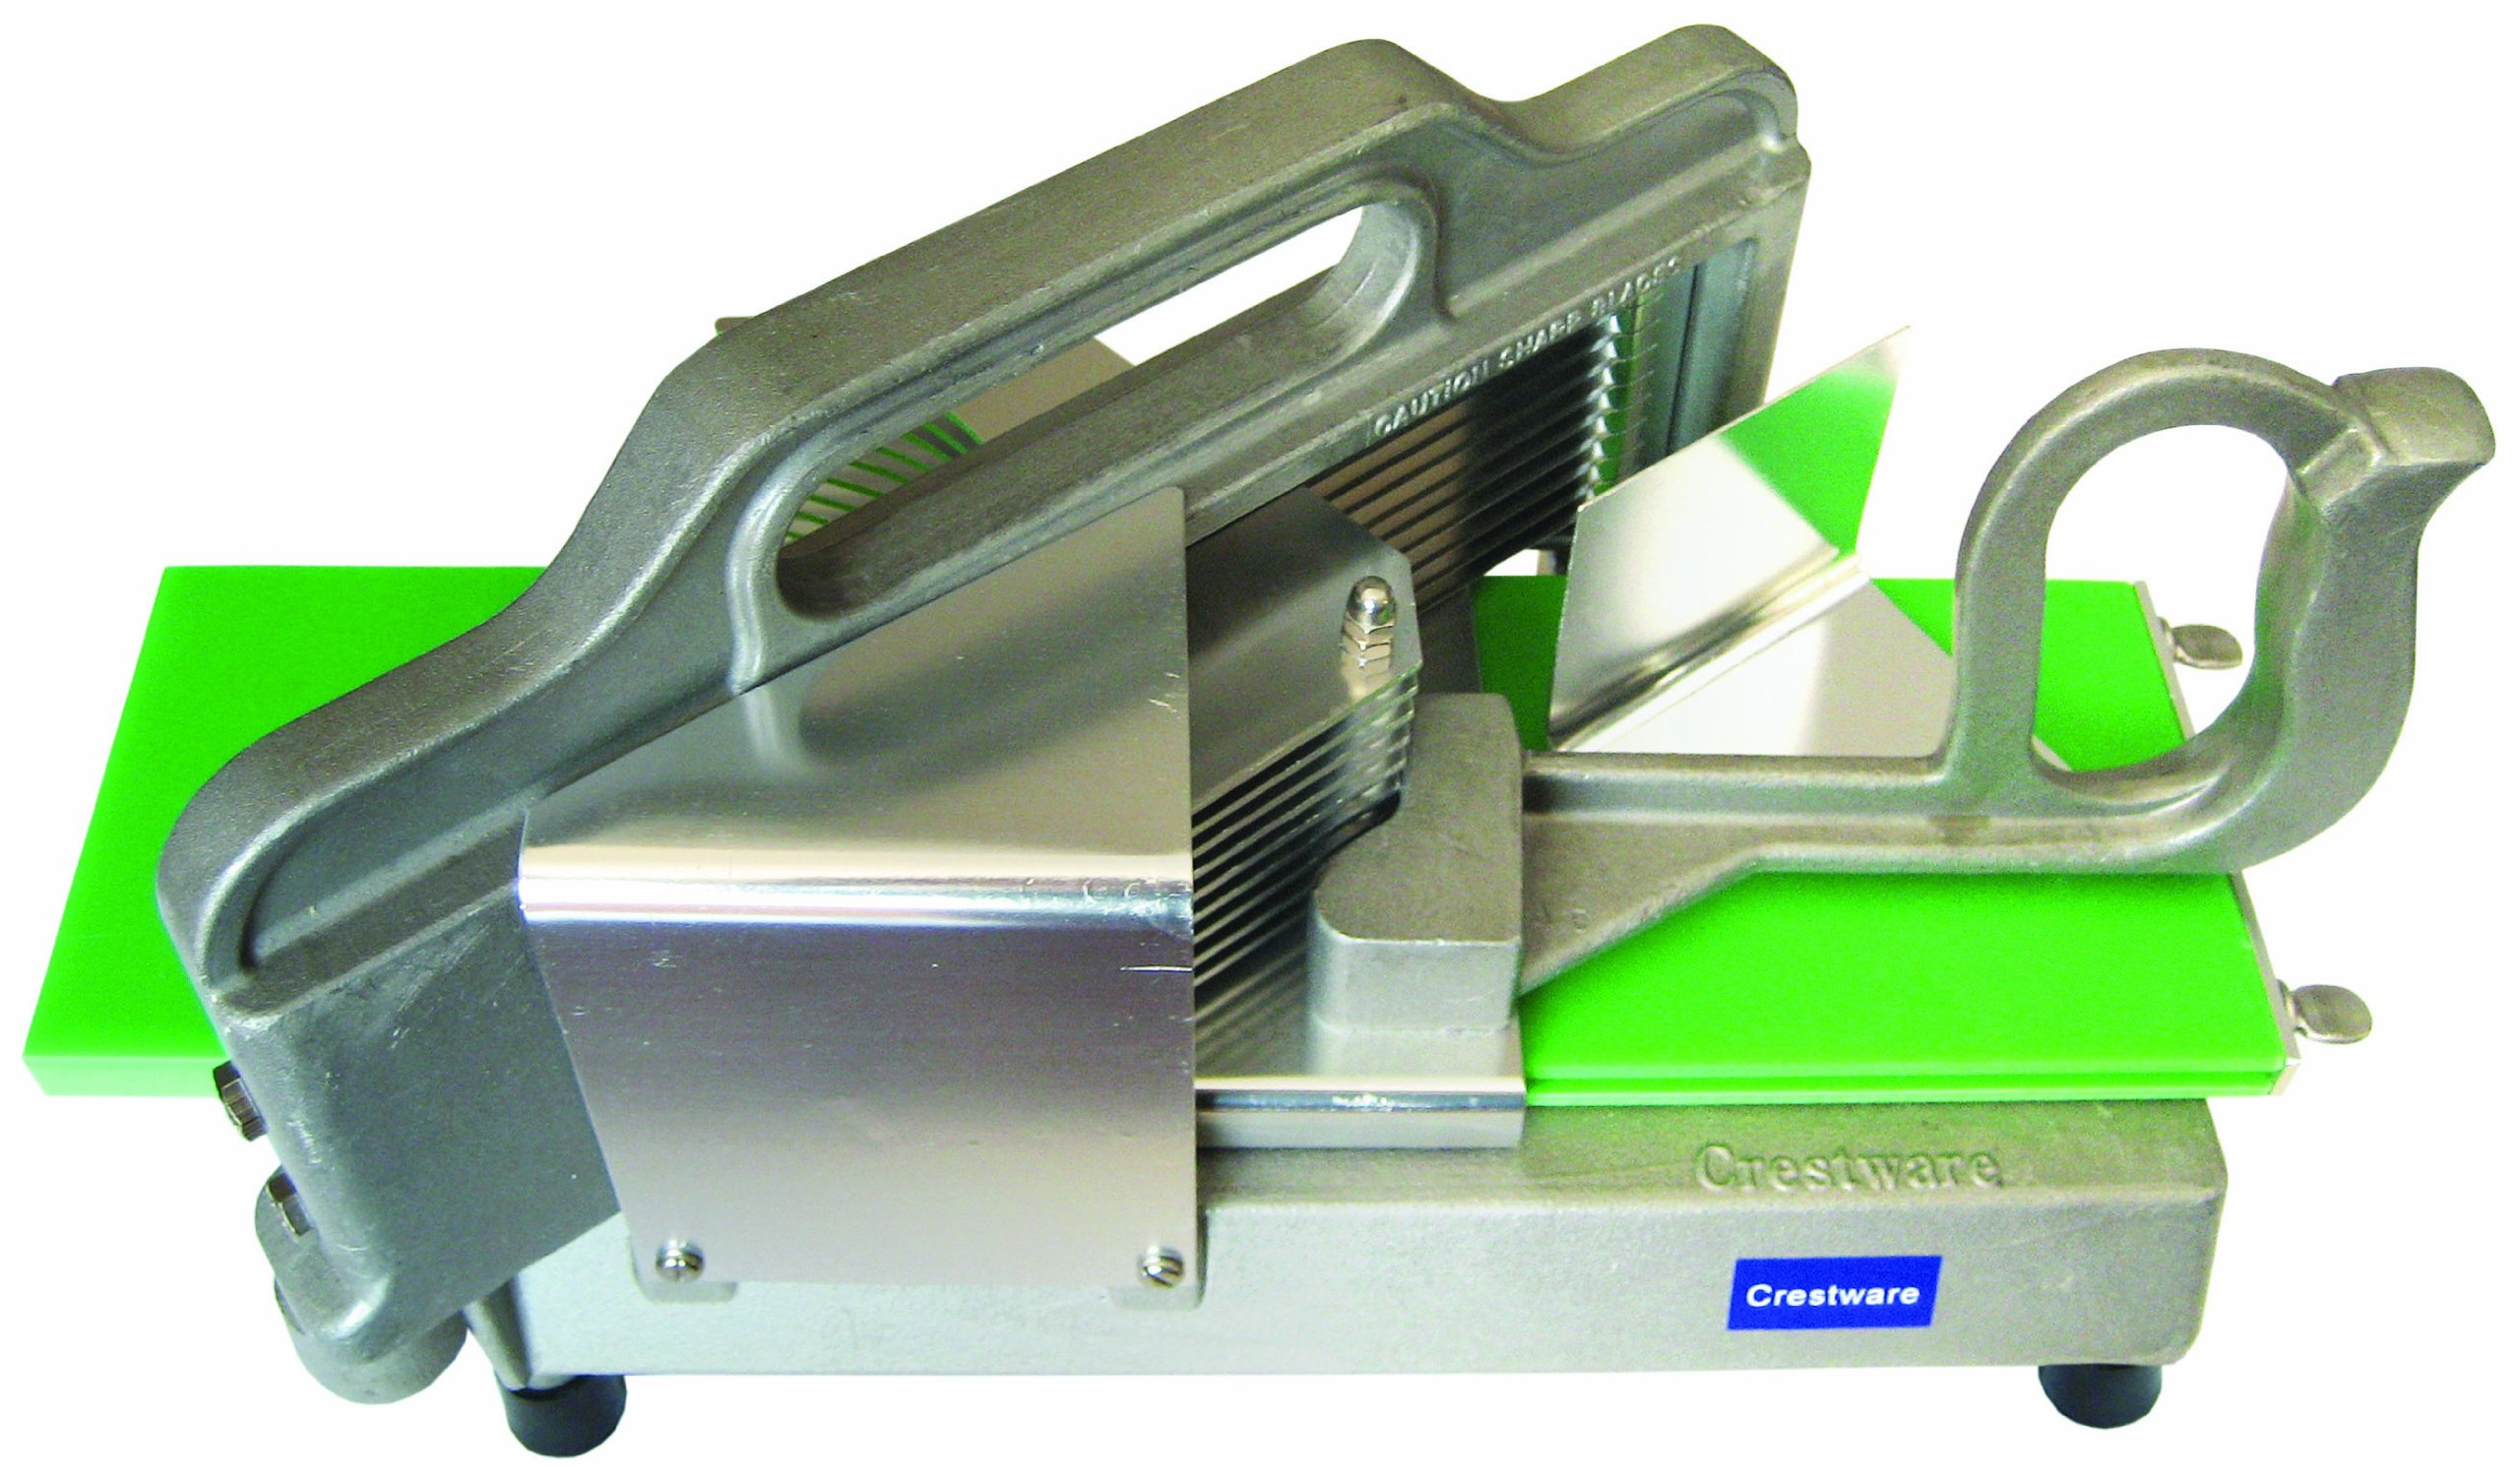 Crestware Tomato Slicer with .1875-Inch Blade